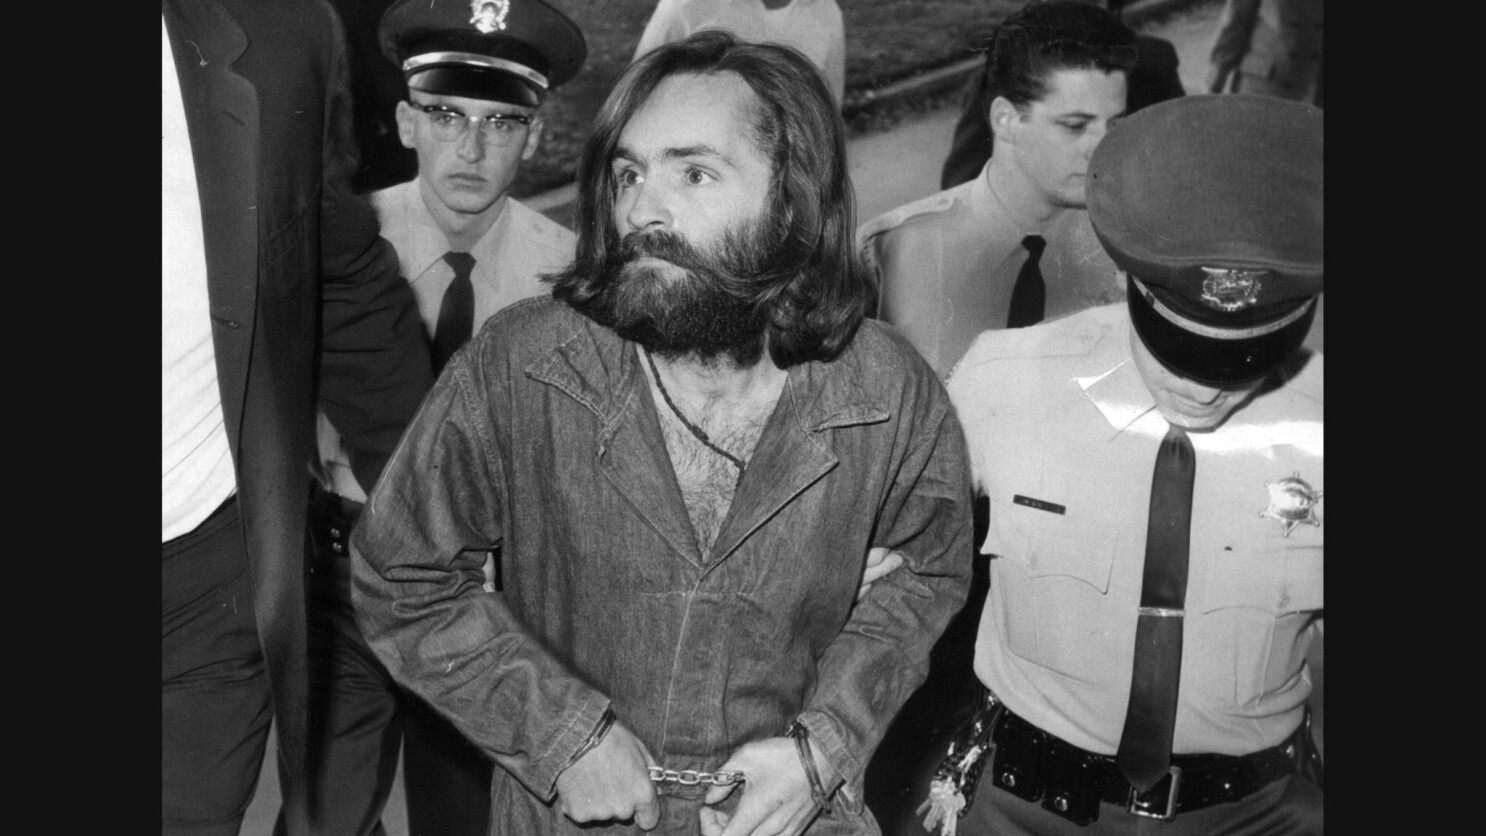 'Once Upon a Time,' 'Mindhunter' downplay Charles Manson's racism